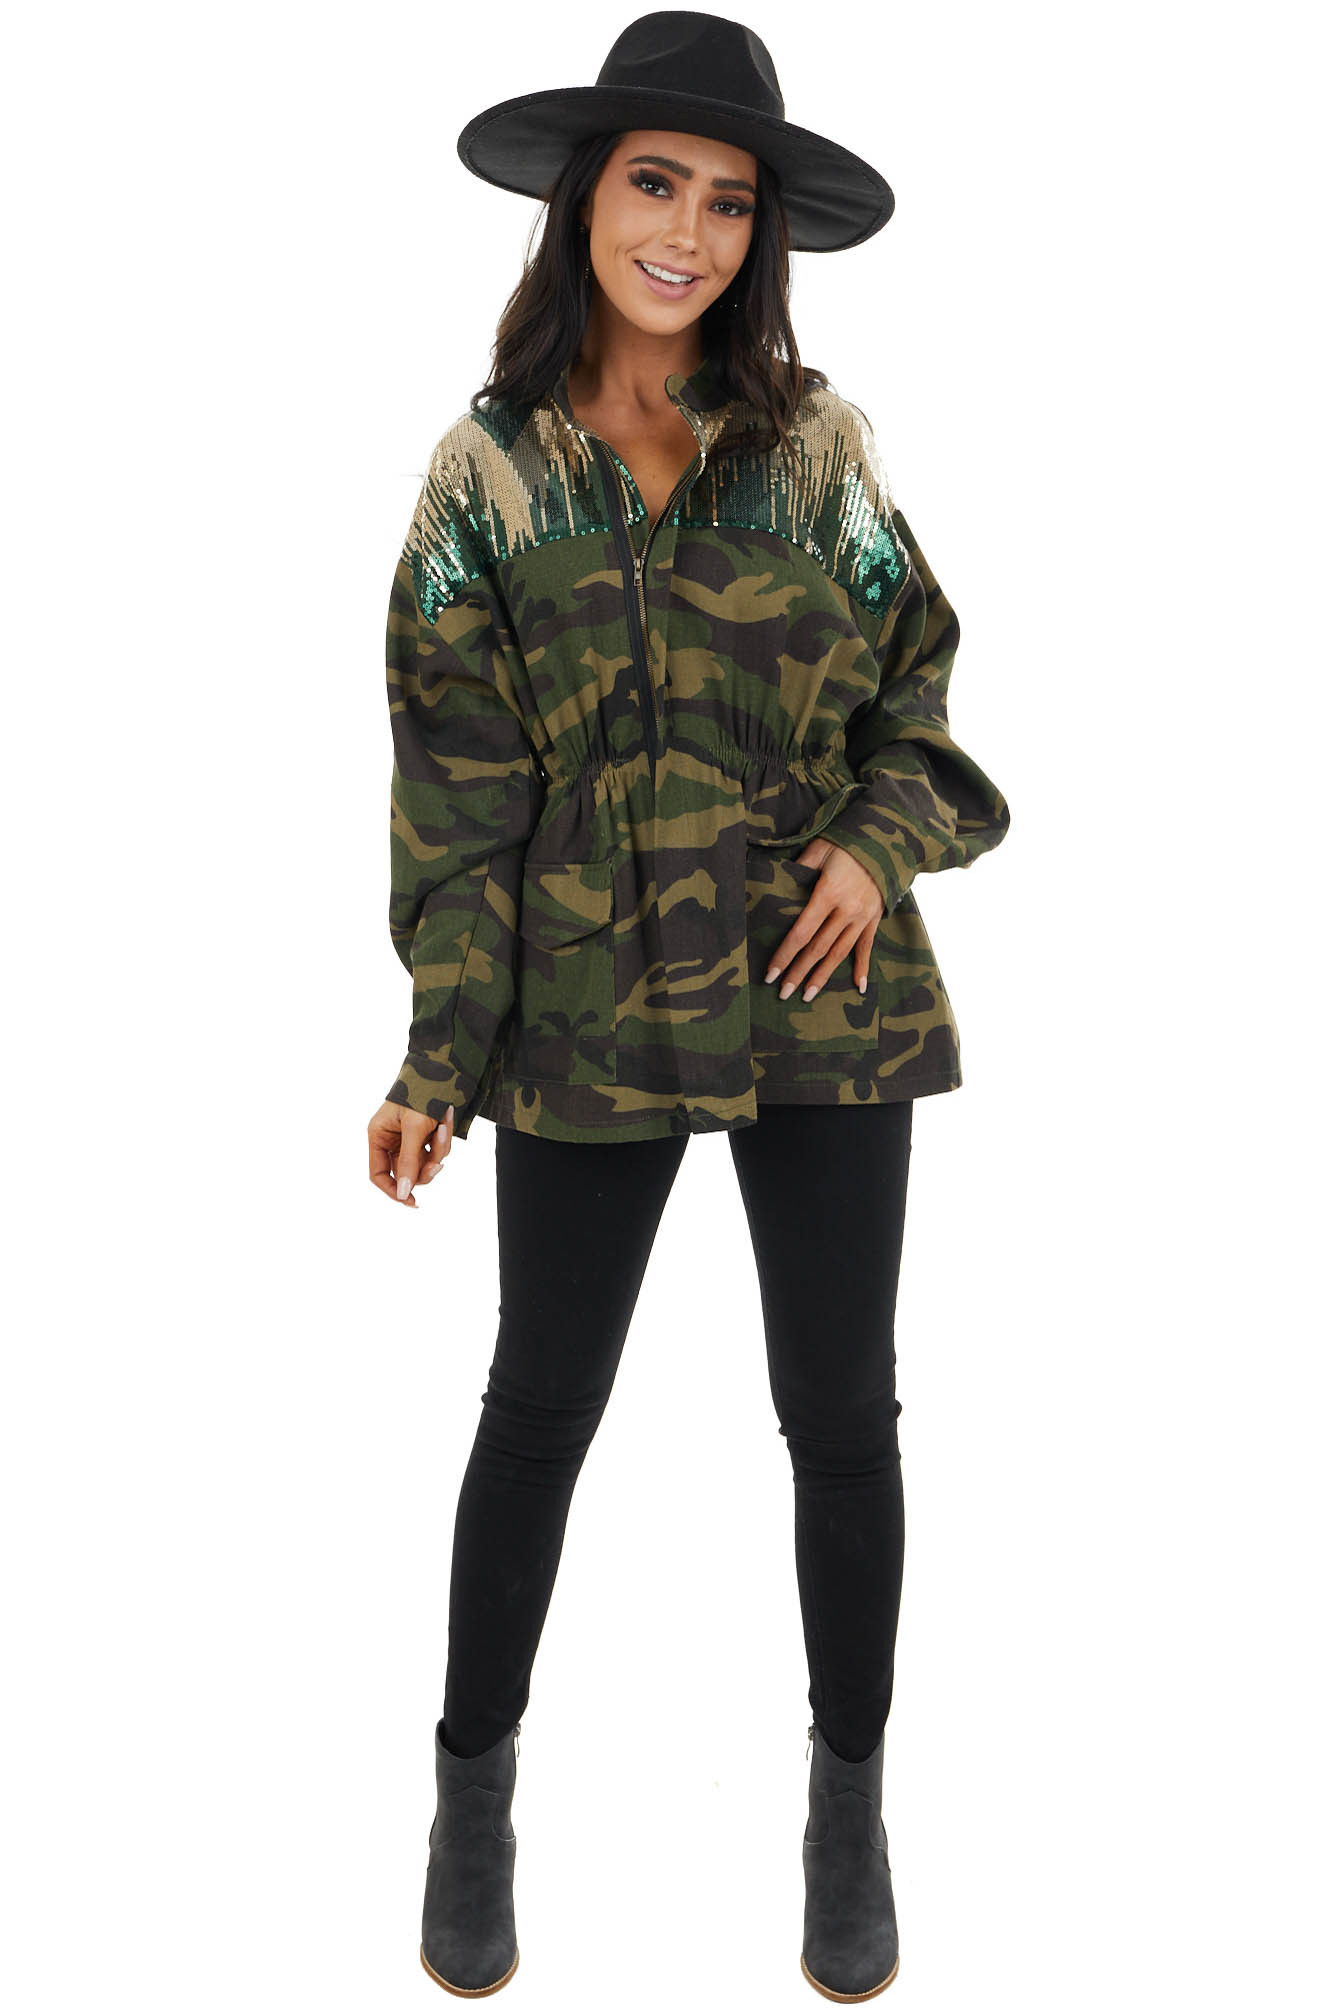 Forest Green Camo Utility Jacket with Sequins and Embroidery